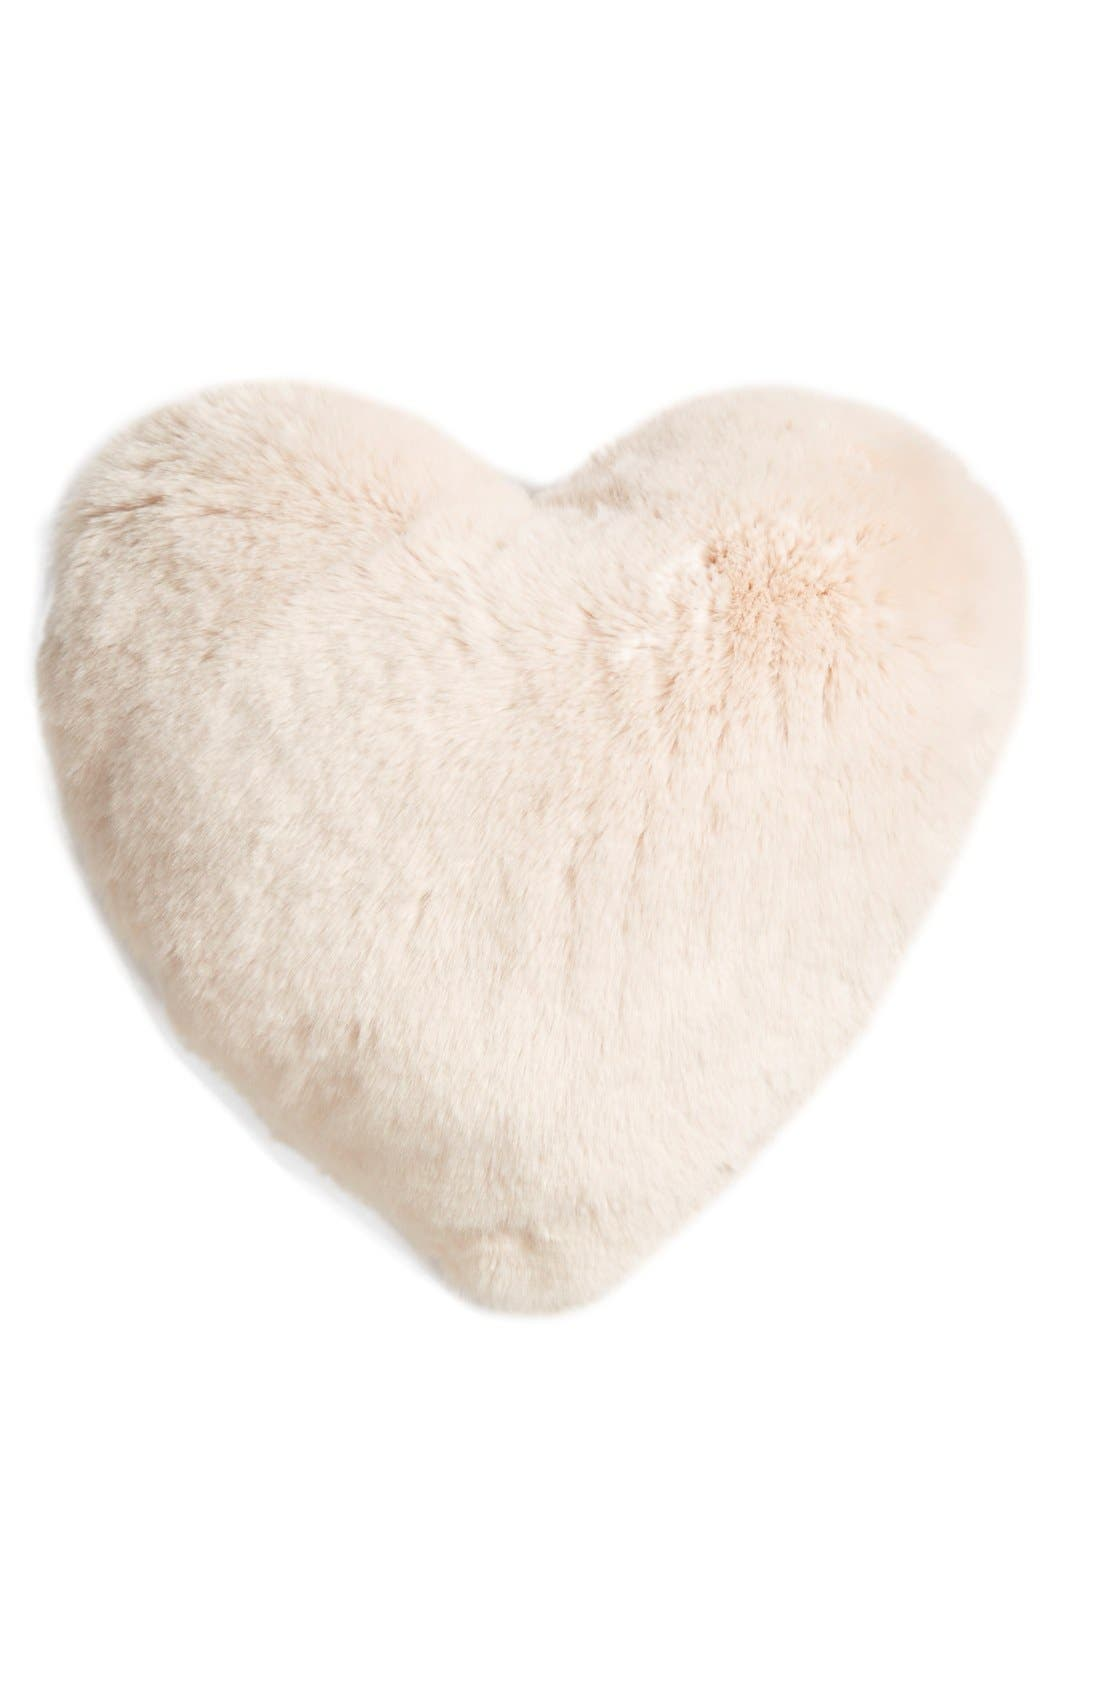 Alternate Image 1 Selected - Nordstrom at Home 'Cuddle Up' Heart Accent Pillow